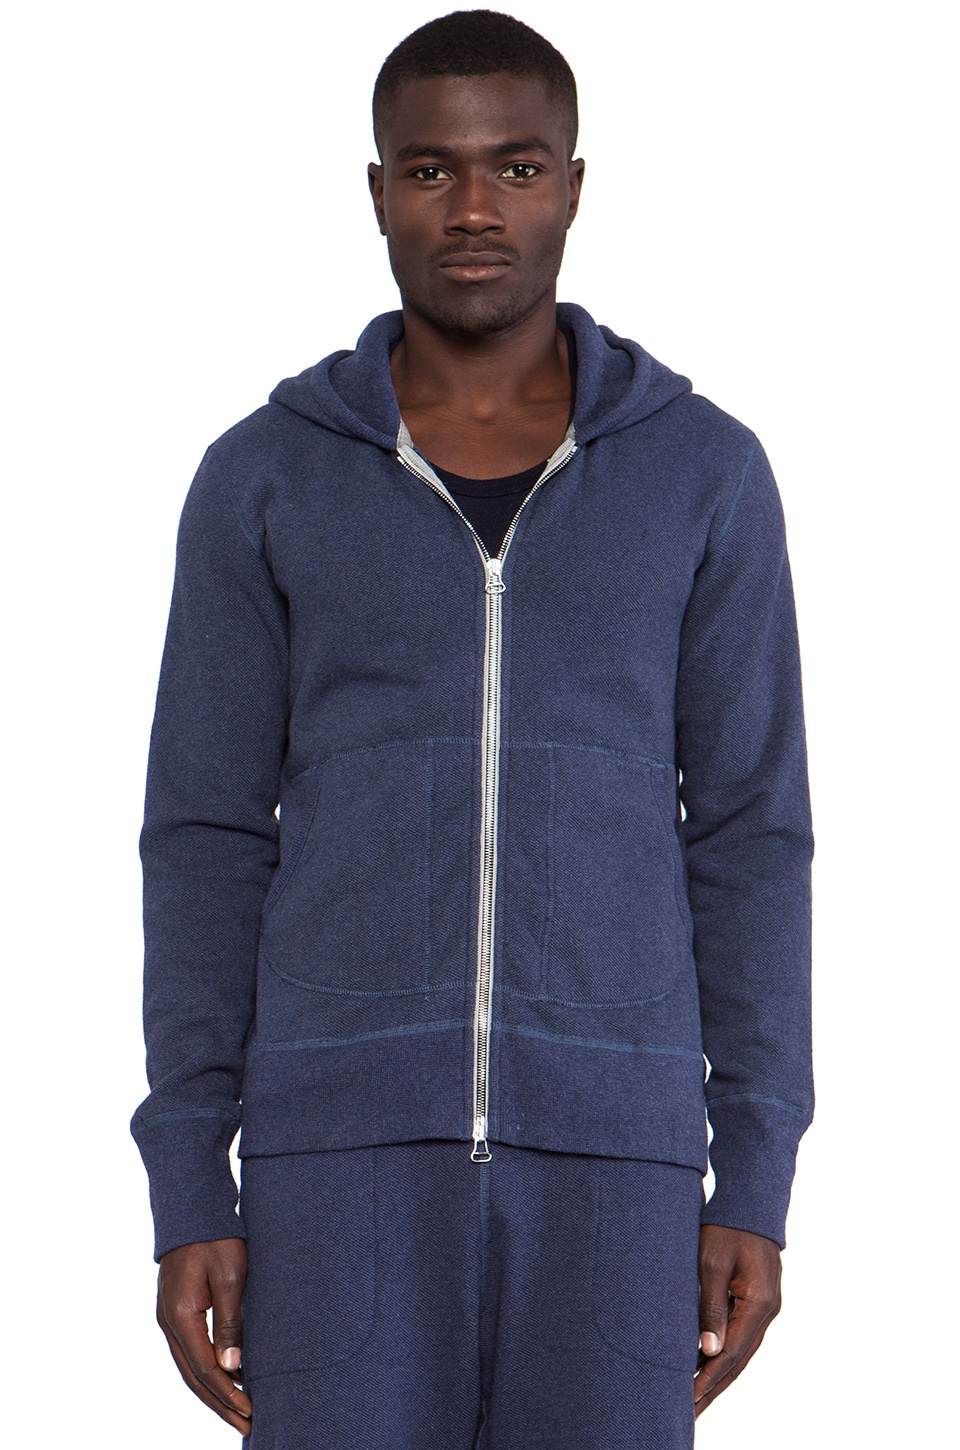 wings + horns Terry Hooded Sweater in Blue Melange